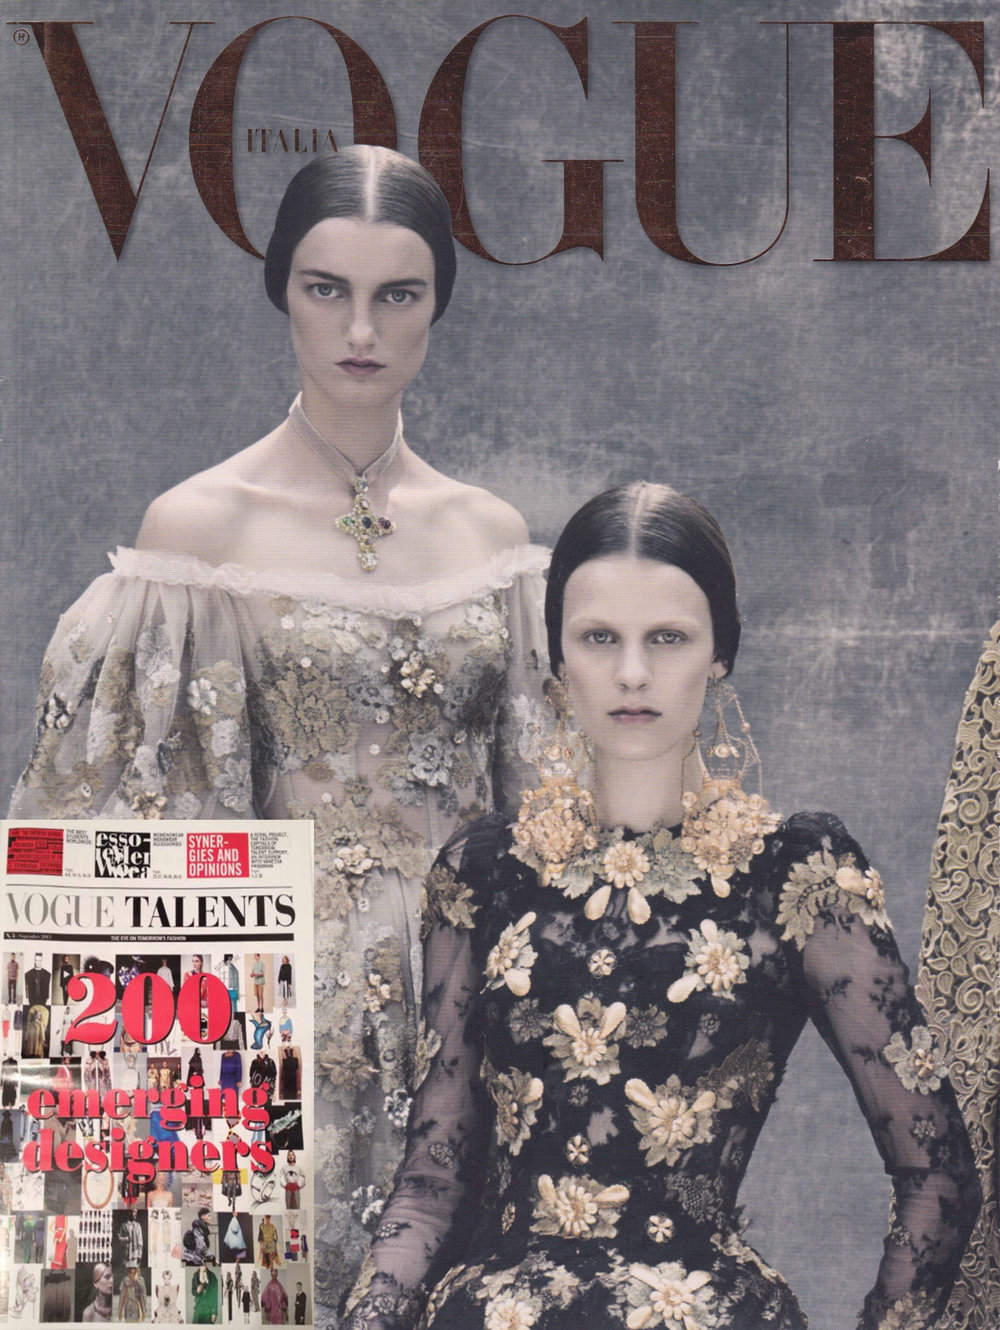 VOGUE ITALIA - NEW TALENT SEPTEMBRE 2013